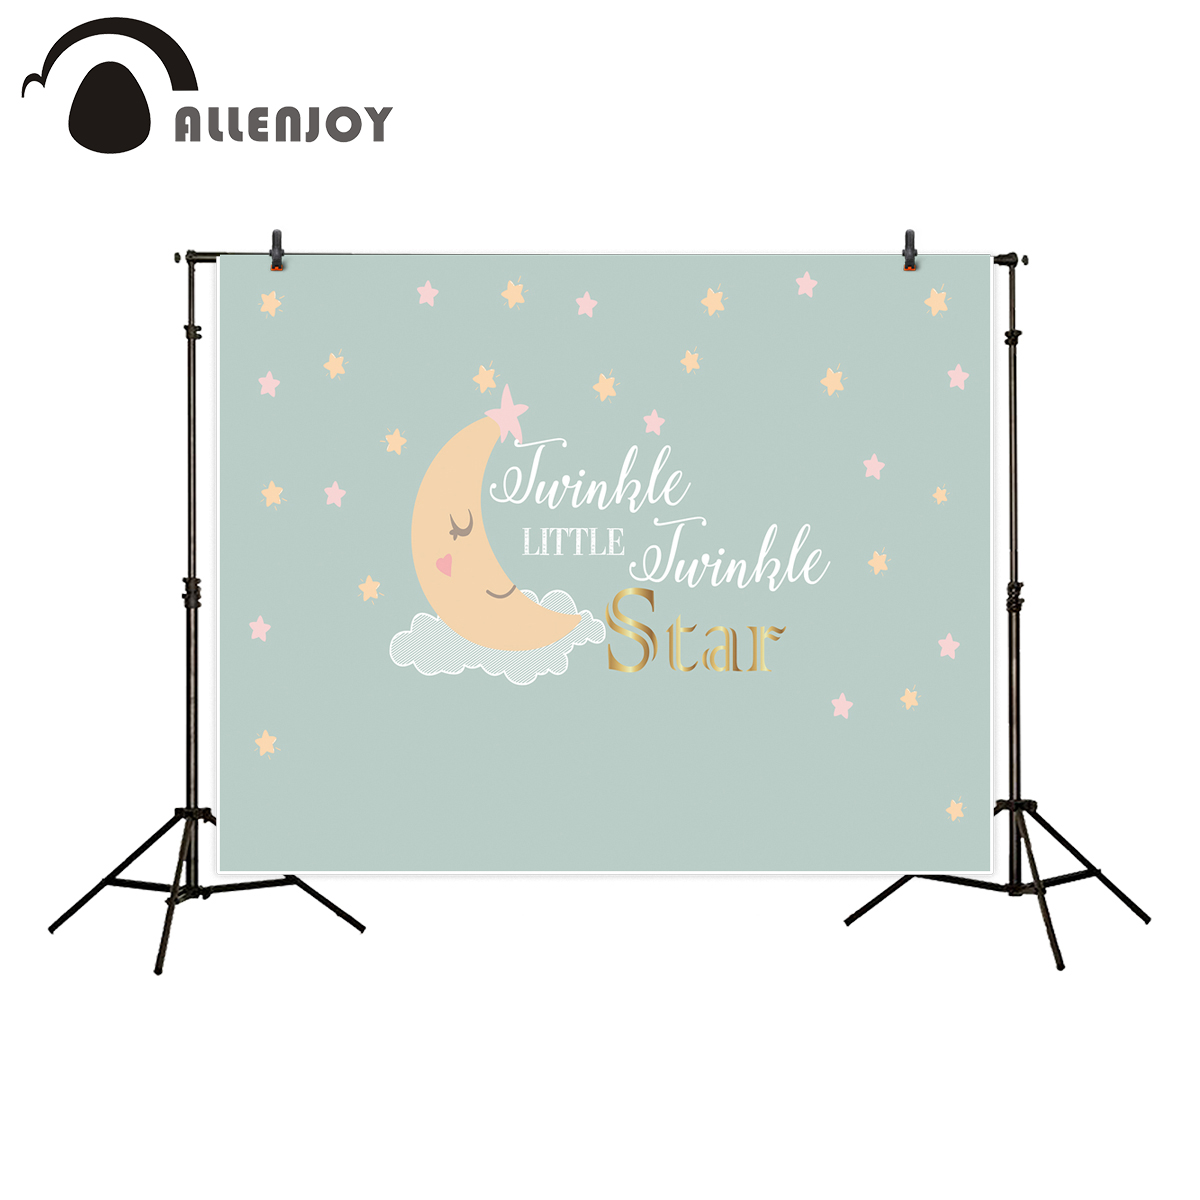 Allenjoy photography background twinkle twinkle little star baby stars heart moon backdrop photo studio photocall allenjoy background for photo studio full moon spider black cat pumpkin halloween backdrop newborn original design fantasy props